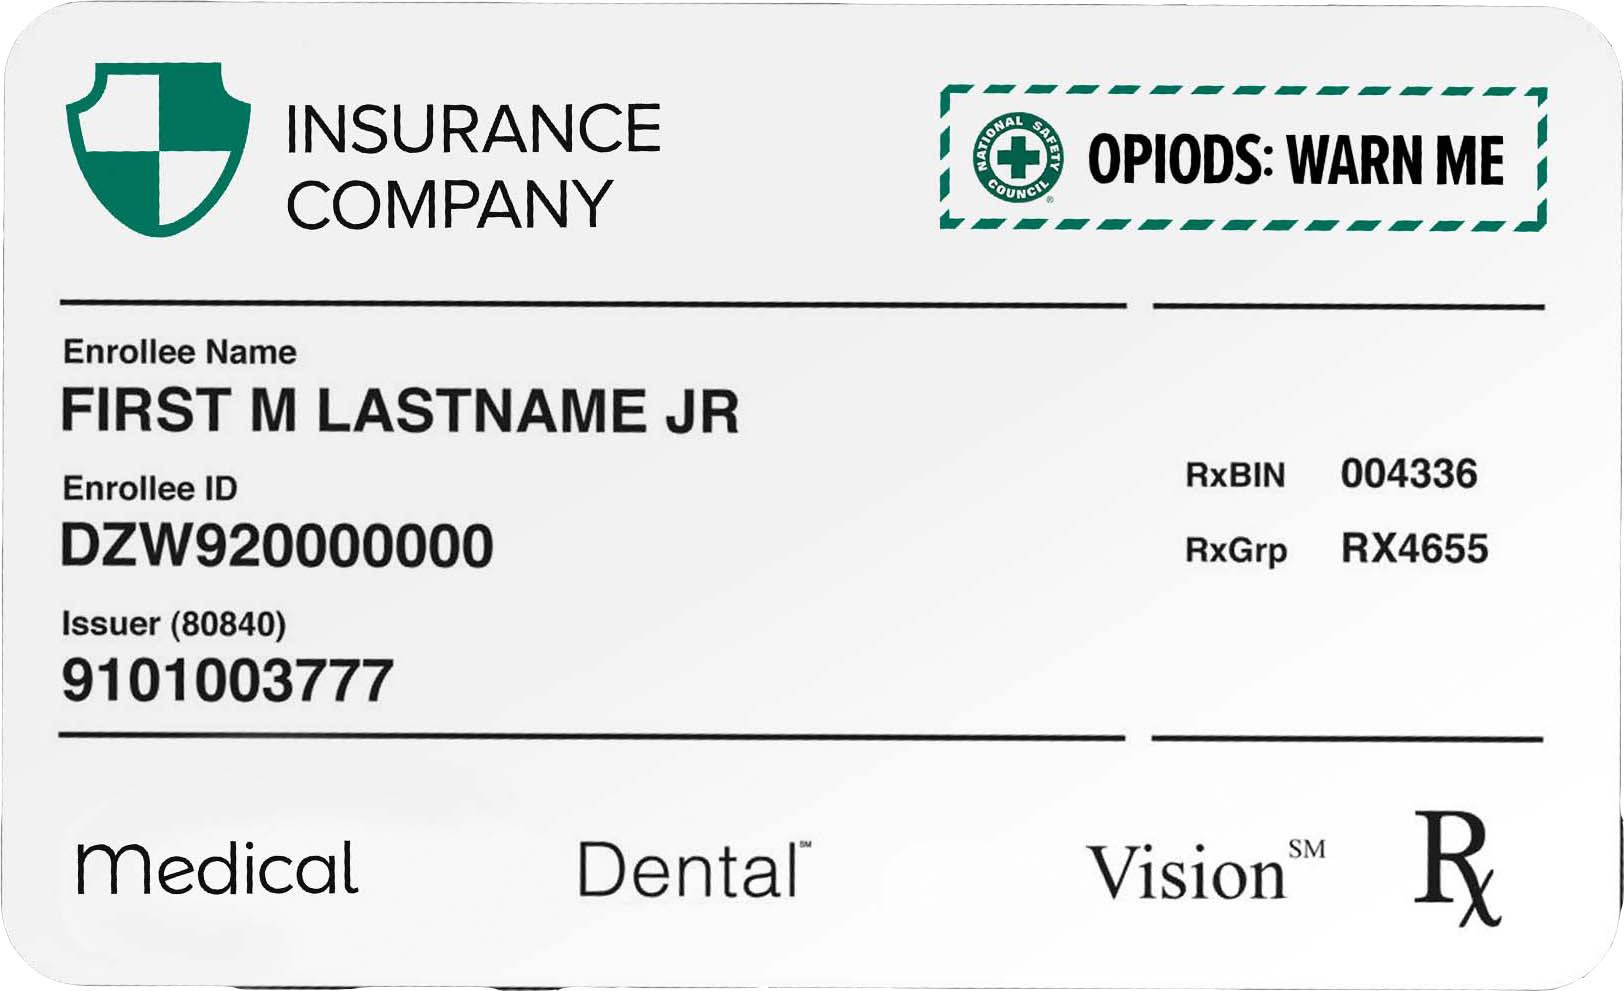 Example Insurance Medical Card